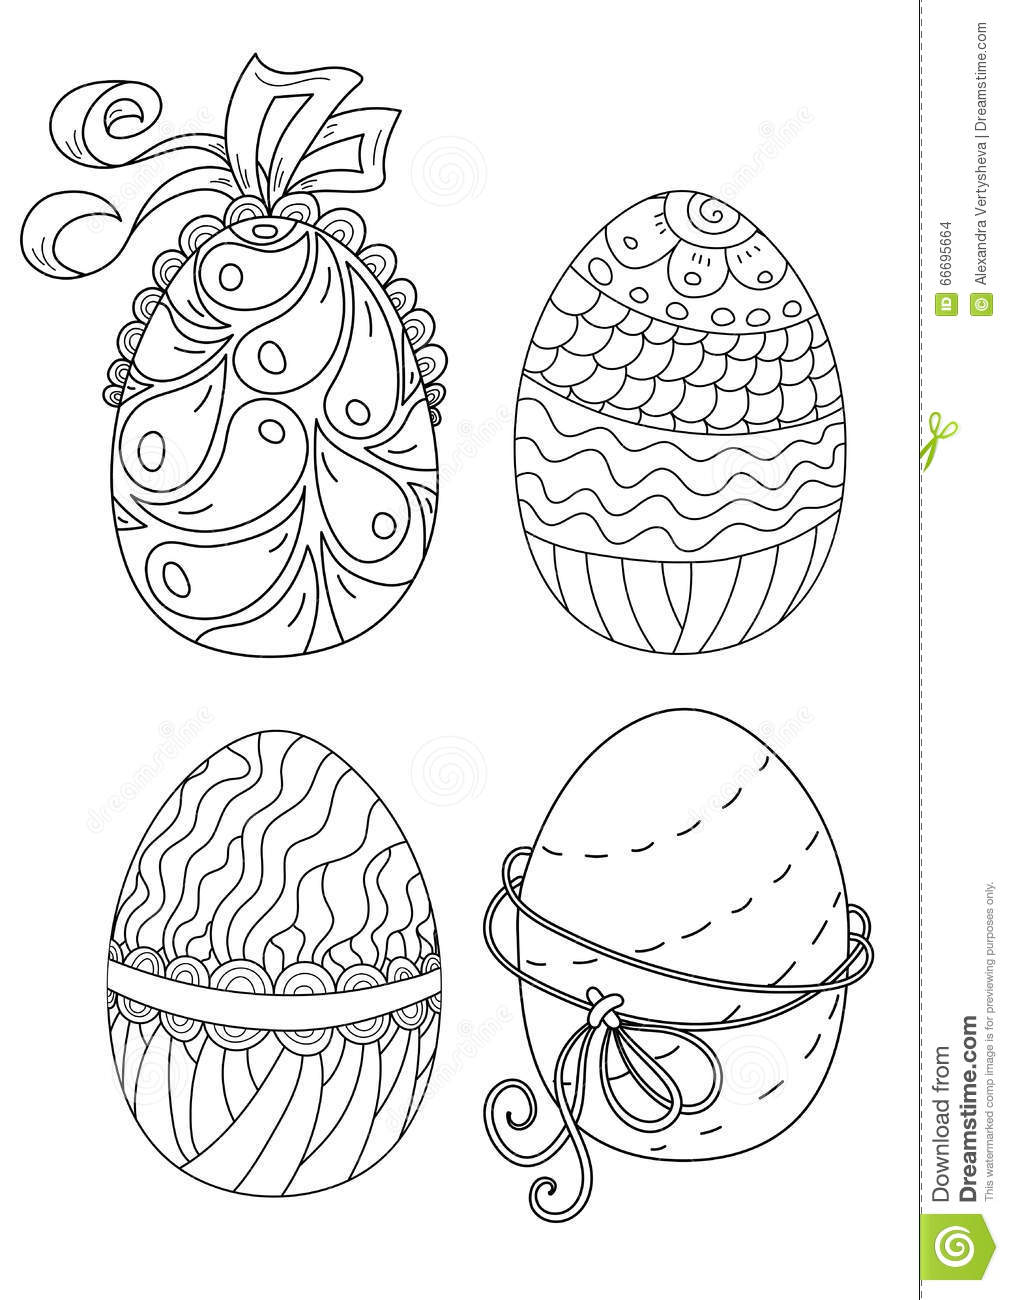 coloring pages ethnic children | Pattern For Coloring Book. Ethnic Retro Design Stock ...